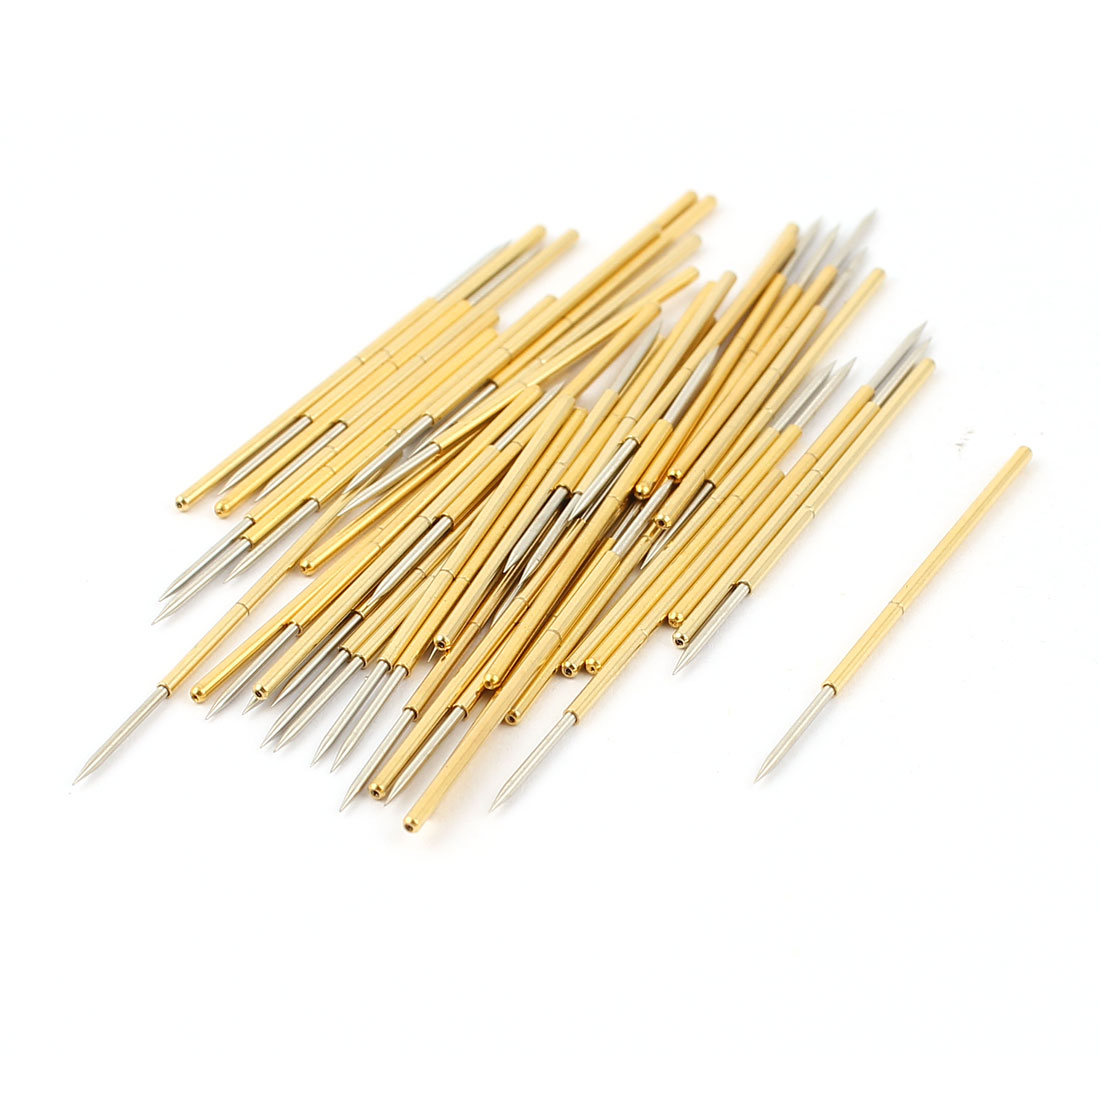 50 Pcs PL75-B1 0.74mm Spear Tip Spring Testing Probes Pin 33mm Length